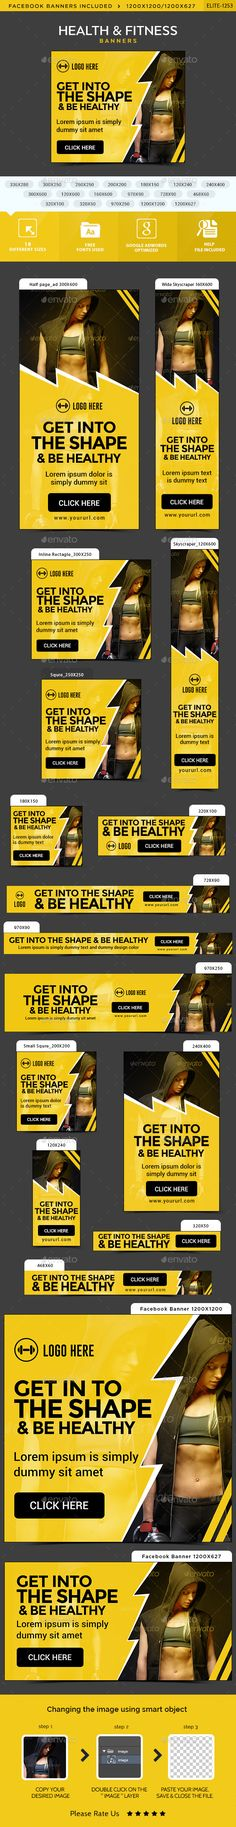 Health & Fitness Web Banners Template PSD. Download here: http://graphicriver.net/item/health-fitness-banners/15159564?ref=ksioks